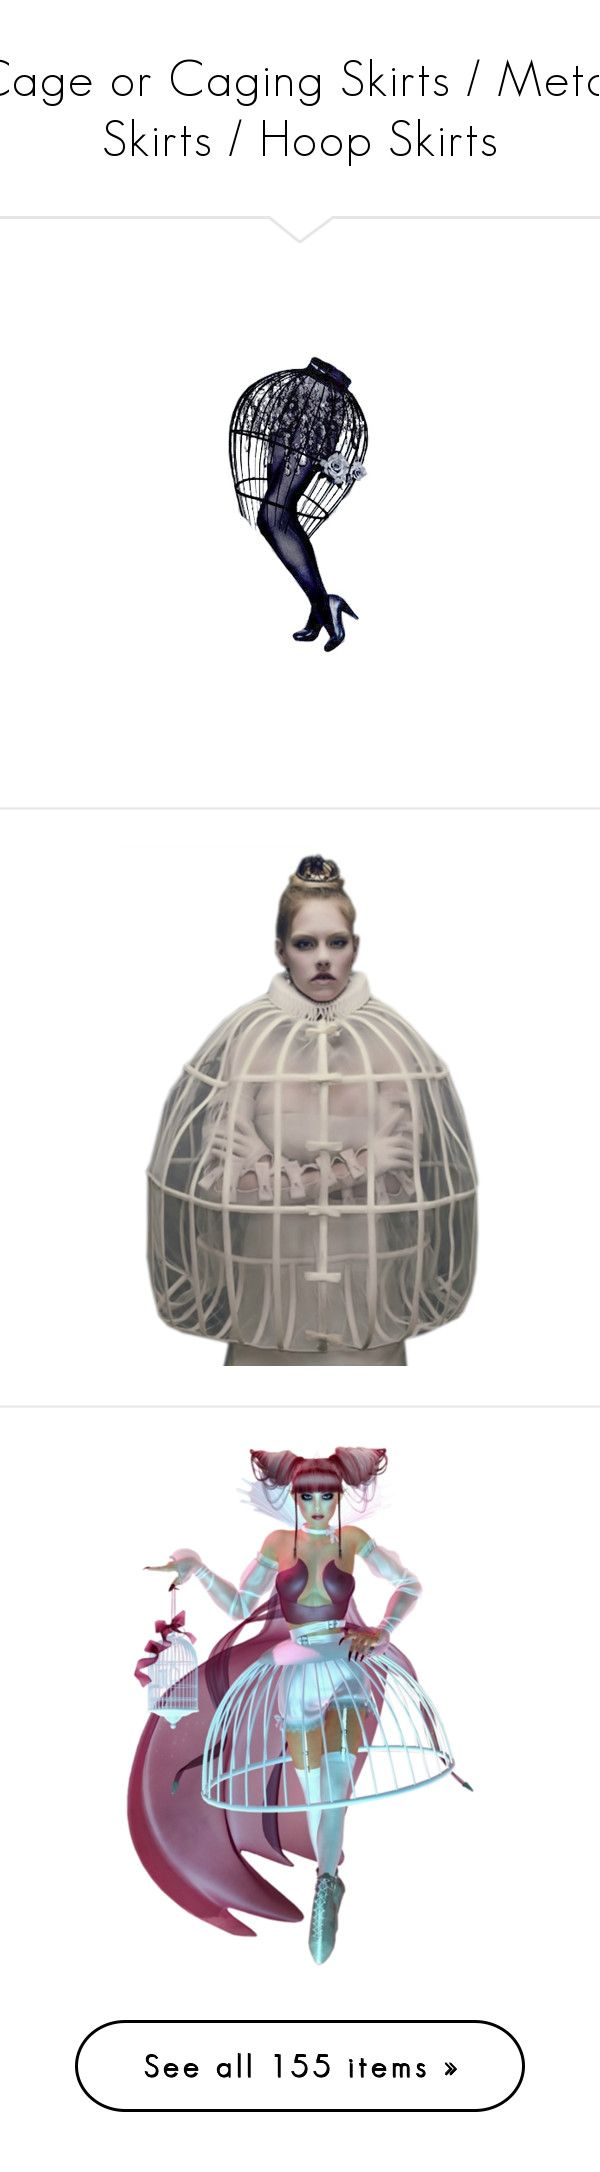 """""""Cage or Caging Skirts / Metal Skirts / Hoop Skirts"""" by nikki-kersey ❤ liked on Polyvore featuring legs, dolls, doll parts, doll legs, paper doll, fantasy tube, girls, people, surreal and models"""